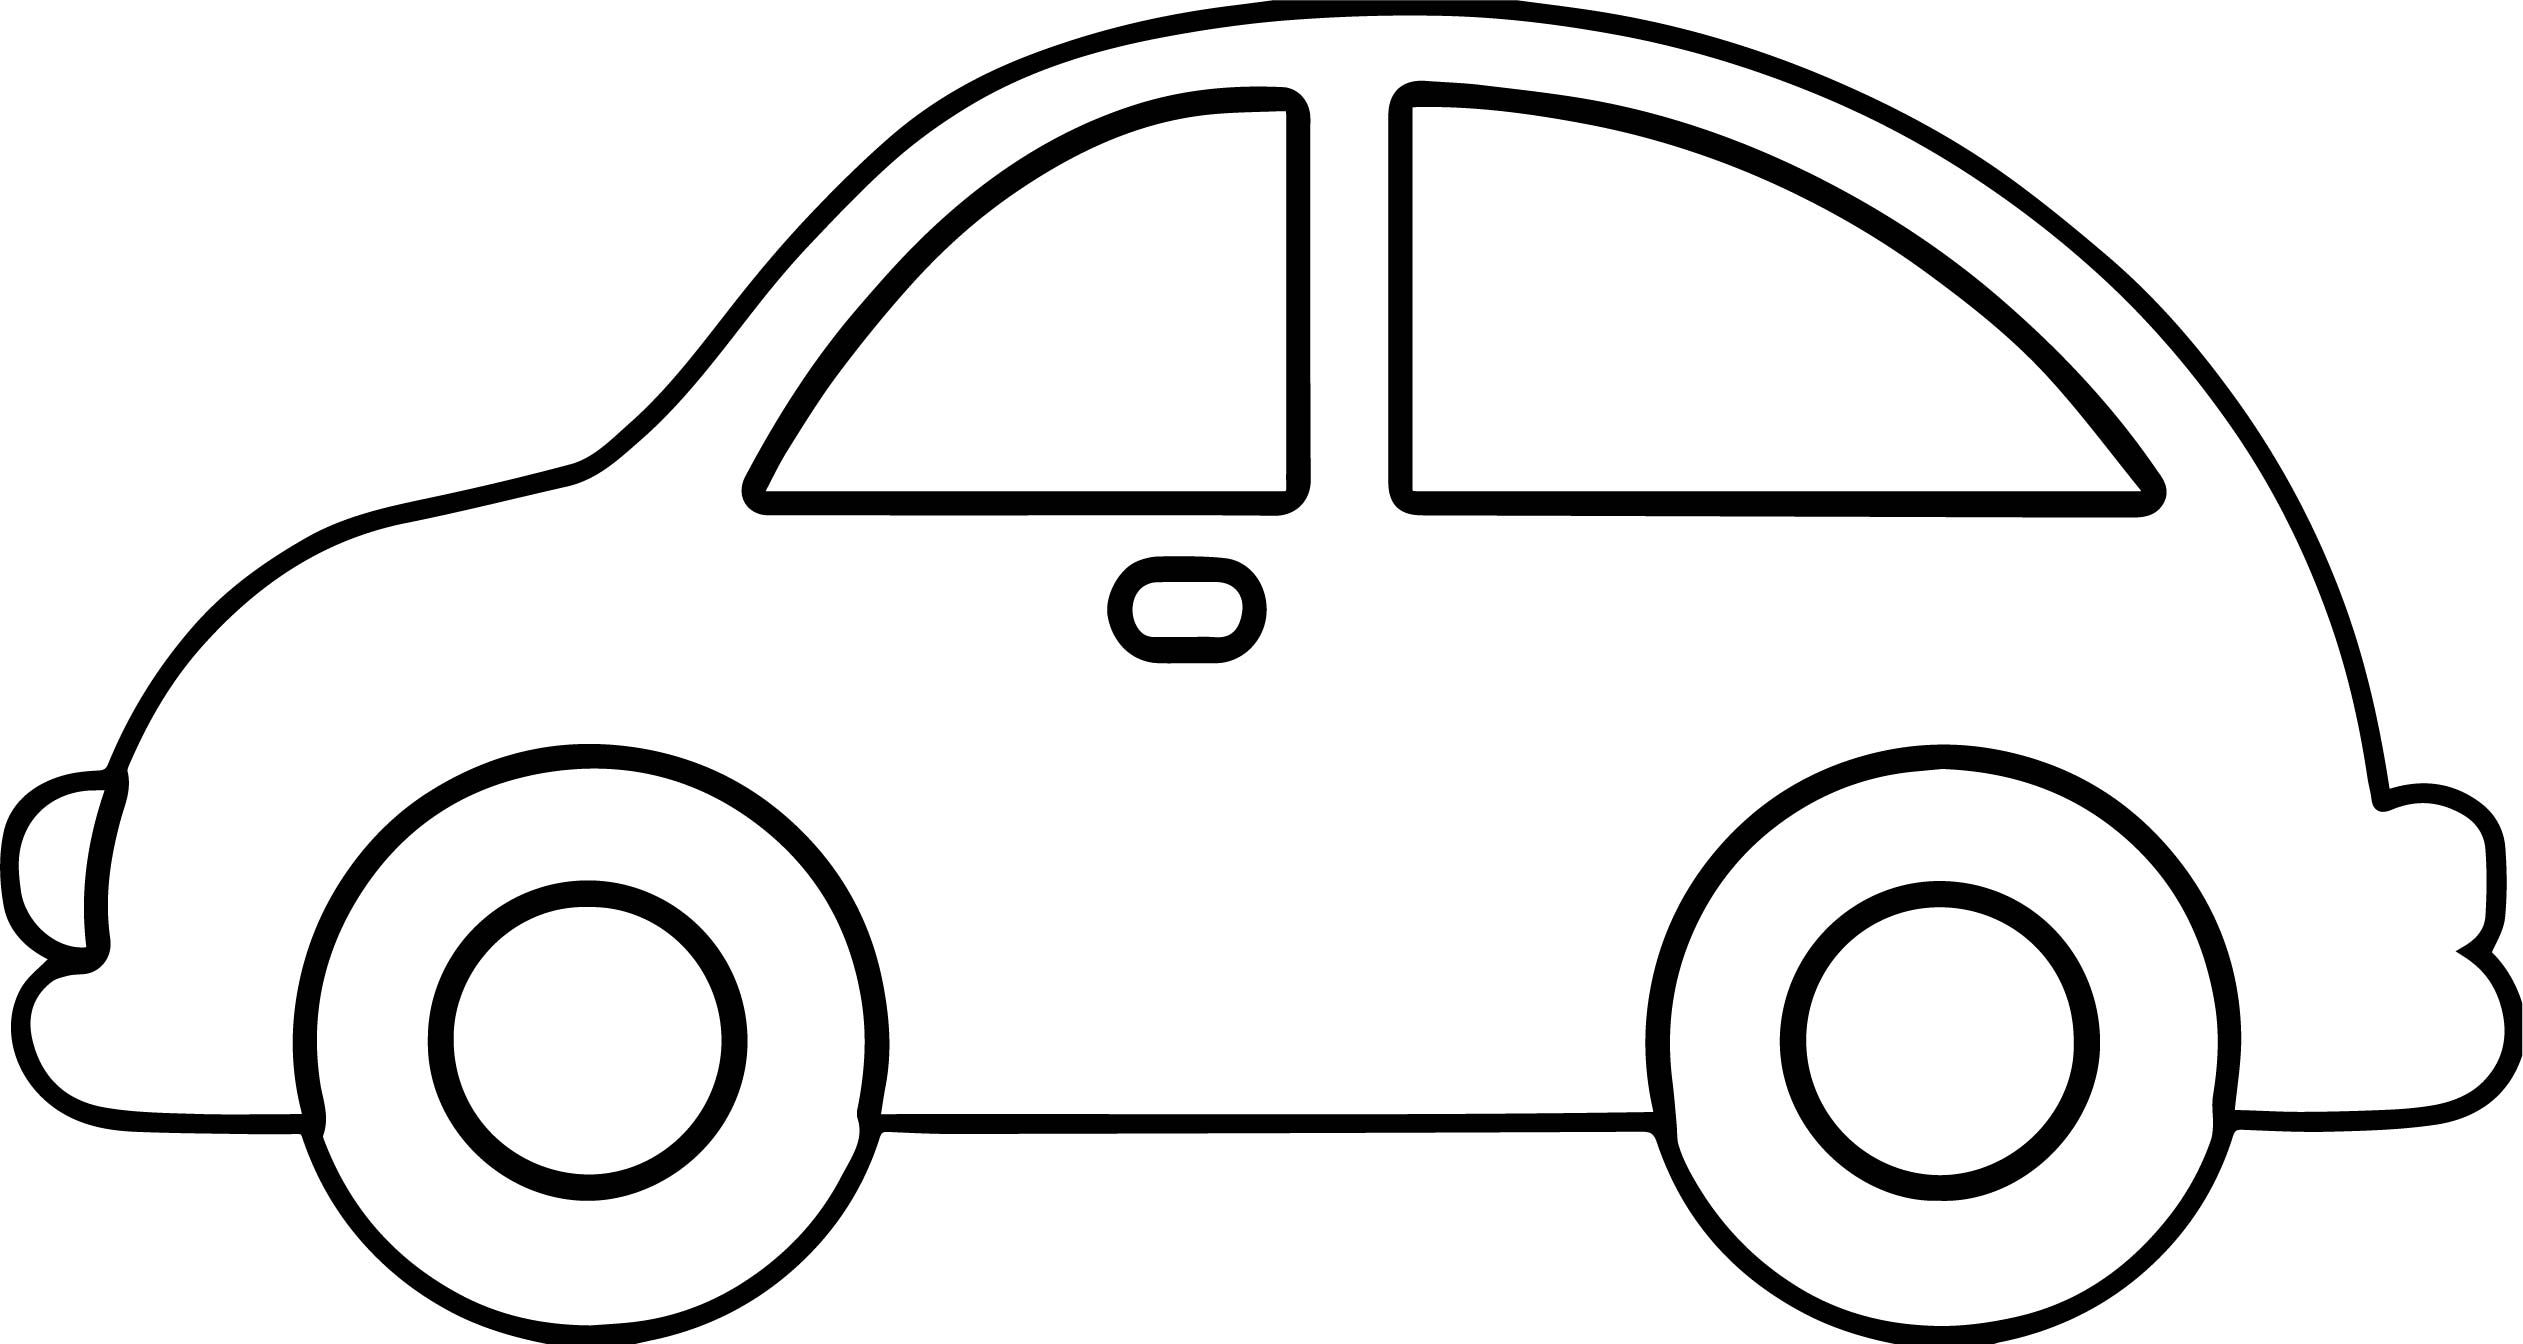 2523x1344 Black And White Cartoon Car Car Outline Free Download Best Car